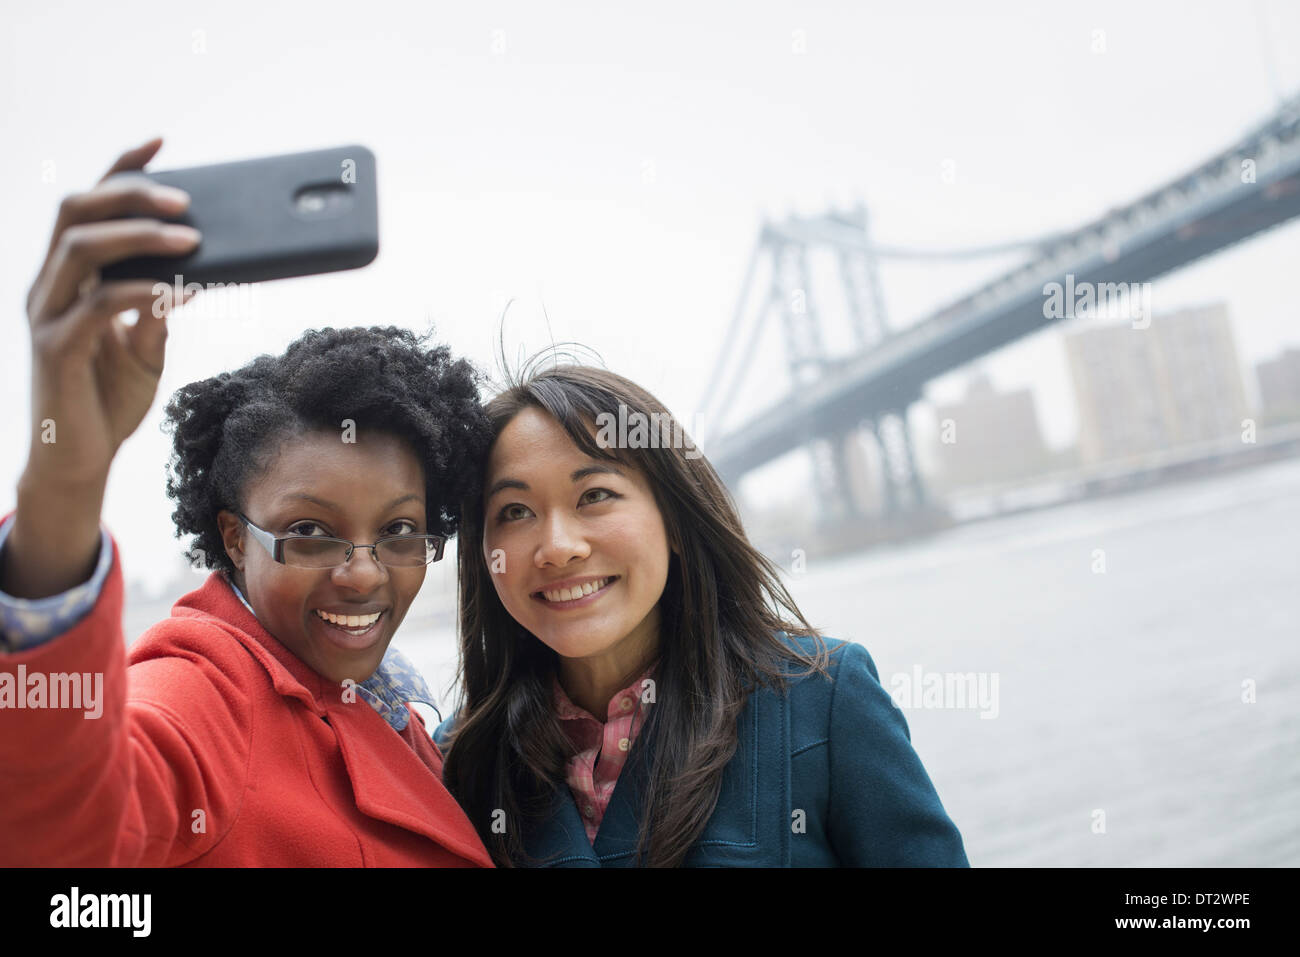 The Brooklyn Bridge crossing over the East River A couple two women taking a picture with a phone a selfy of themselves Stock Photo